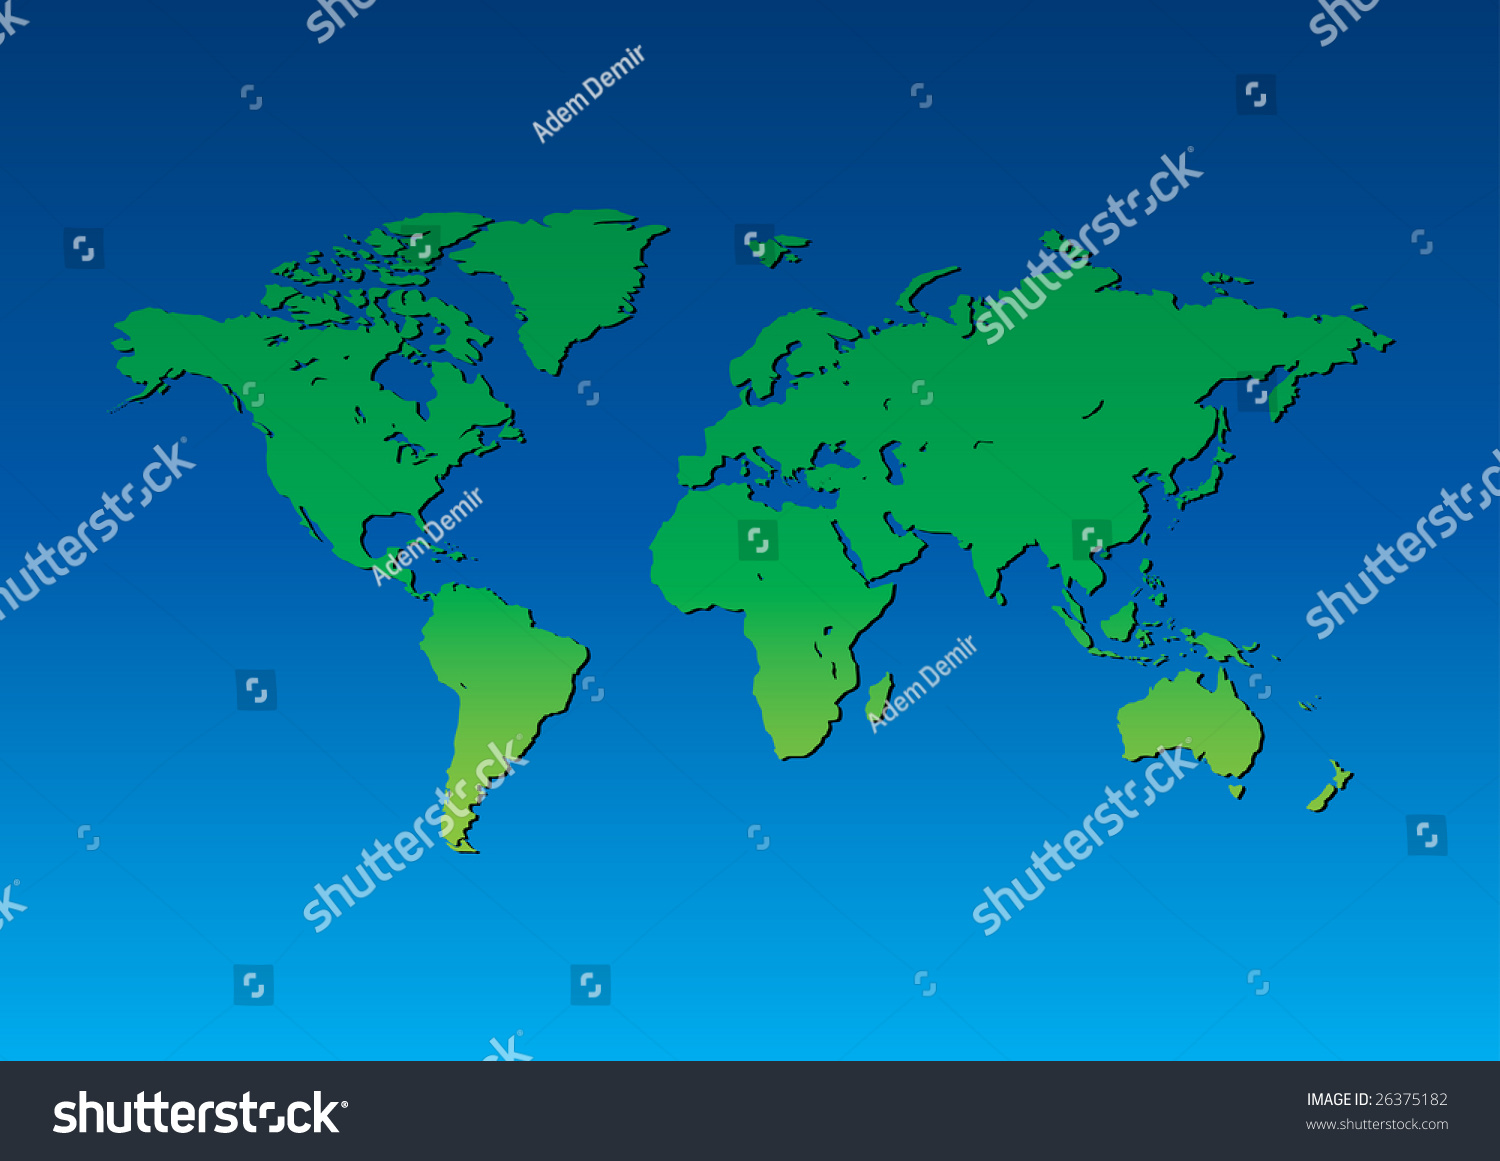 Green blue world map background world vectores en stock 26375182 green blue world map background world background series gumiabroncs Image collections